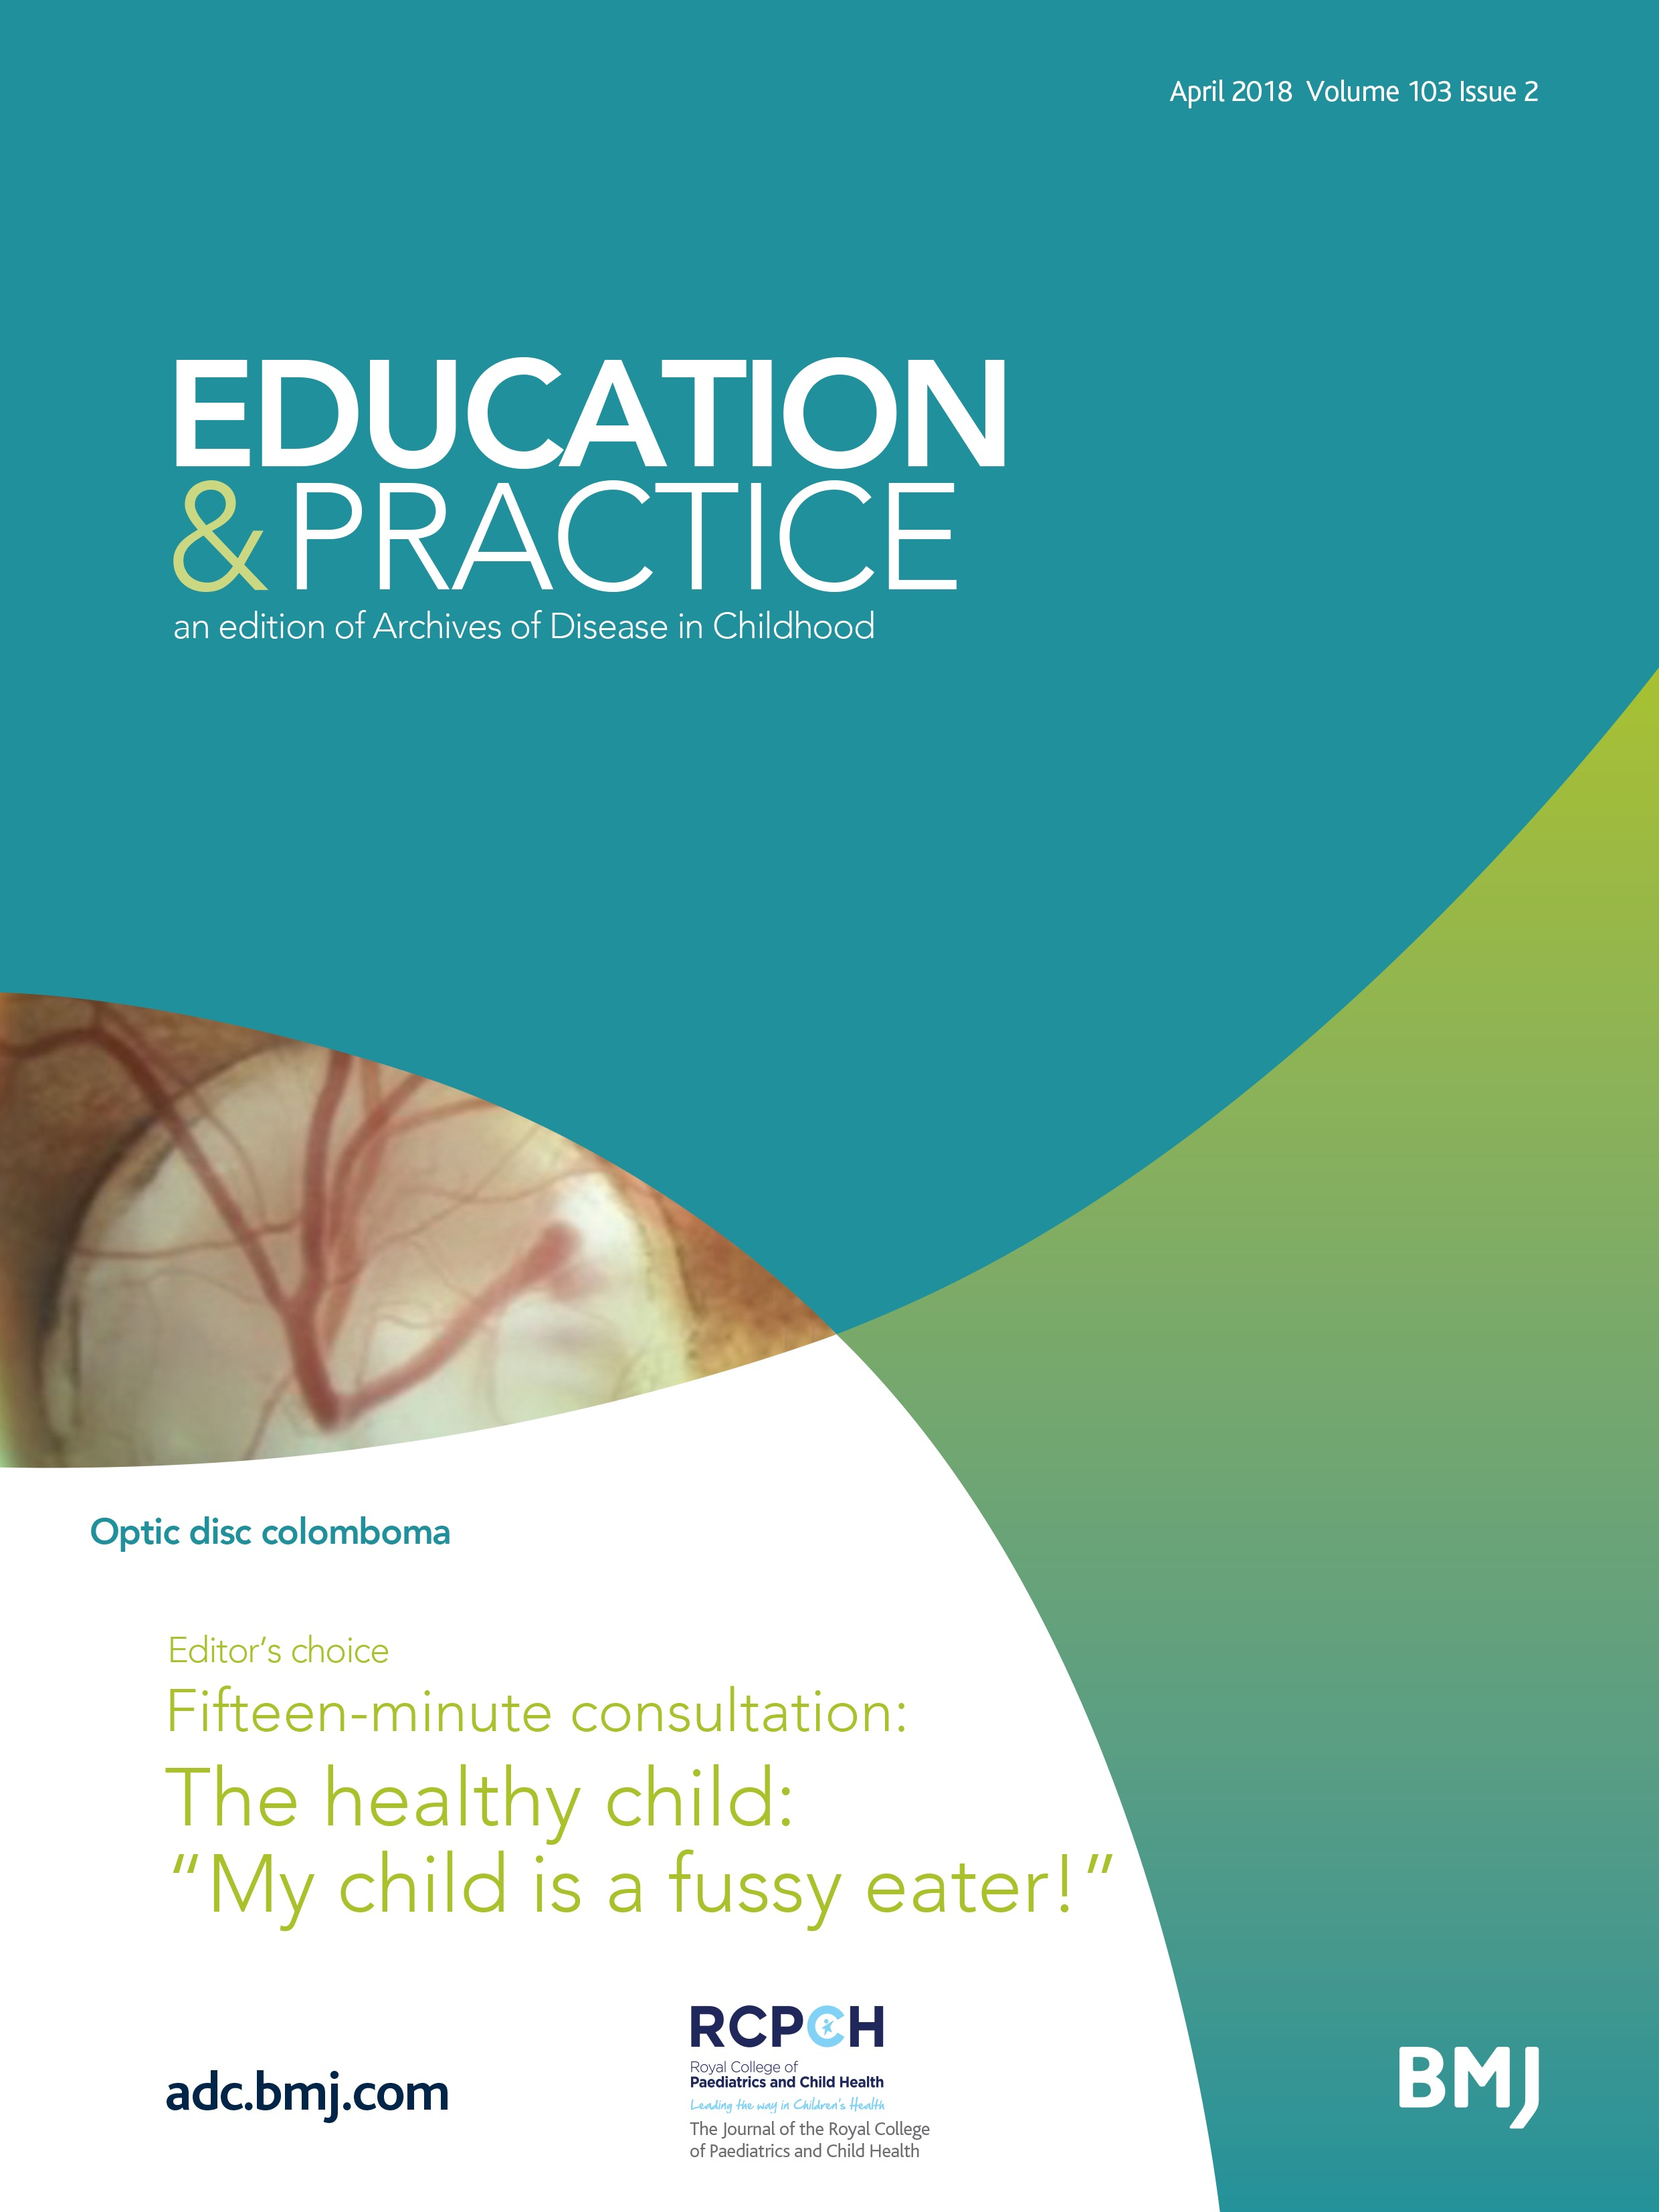 """Fifteen-minute consultation: The healthy child: """"My child is a fussy  eater!"""" 